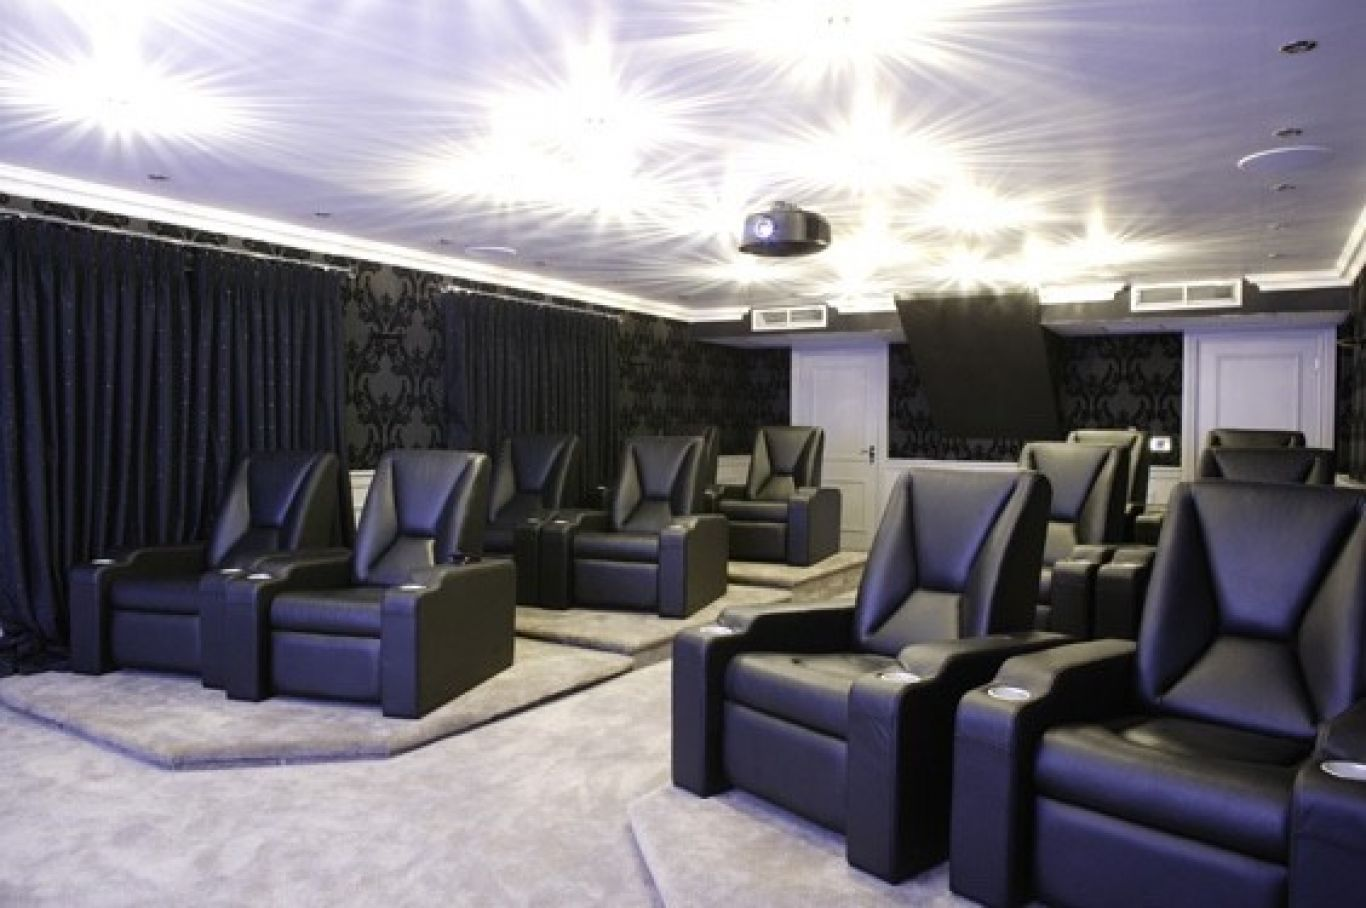 cinema room furniture. If You Would Like To Learn More About Dedicated Cinema Rooms Or Any Of The Services Listed Above Please Contact Us Arrange For One Our Consultants Room Furniture